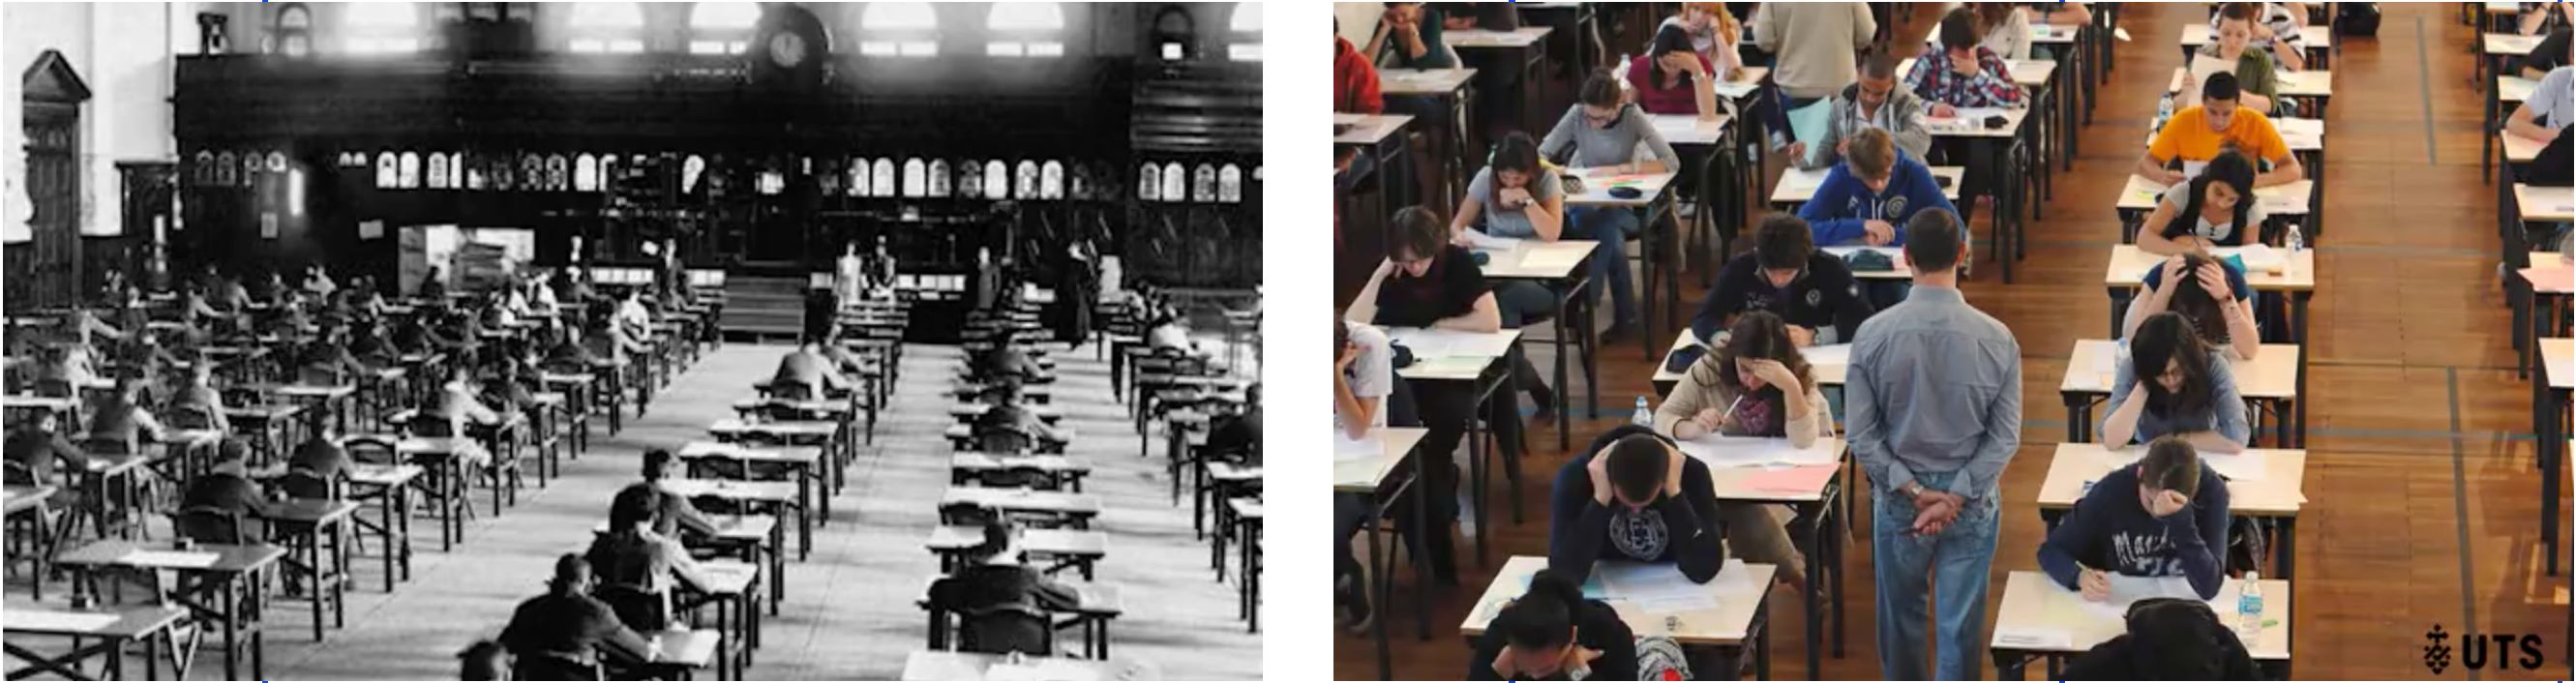 two images - on the left, a black and white picture of an old traditional classroom, on the right a colour photo of a modern day classroom